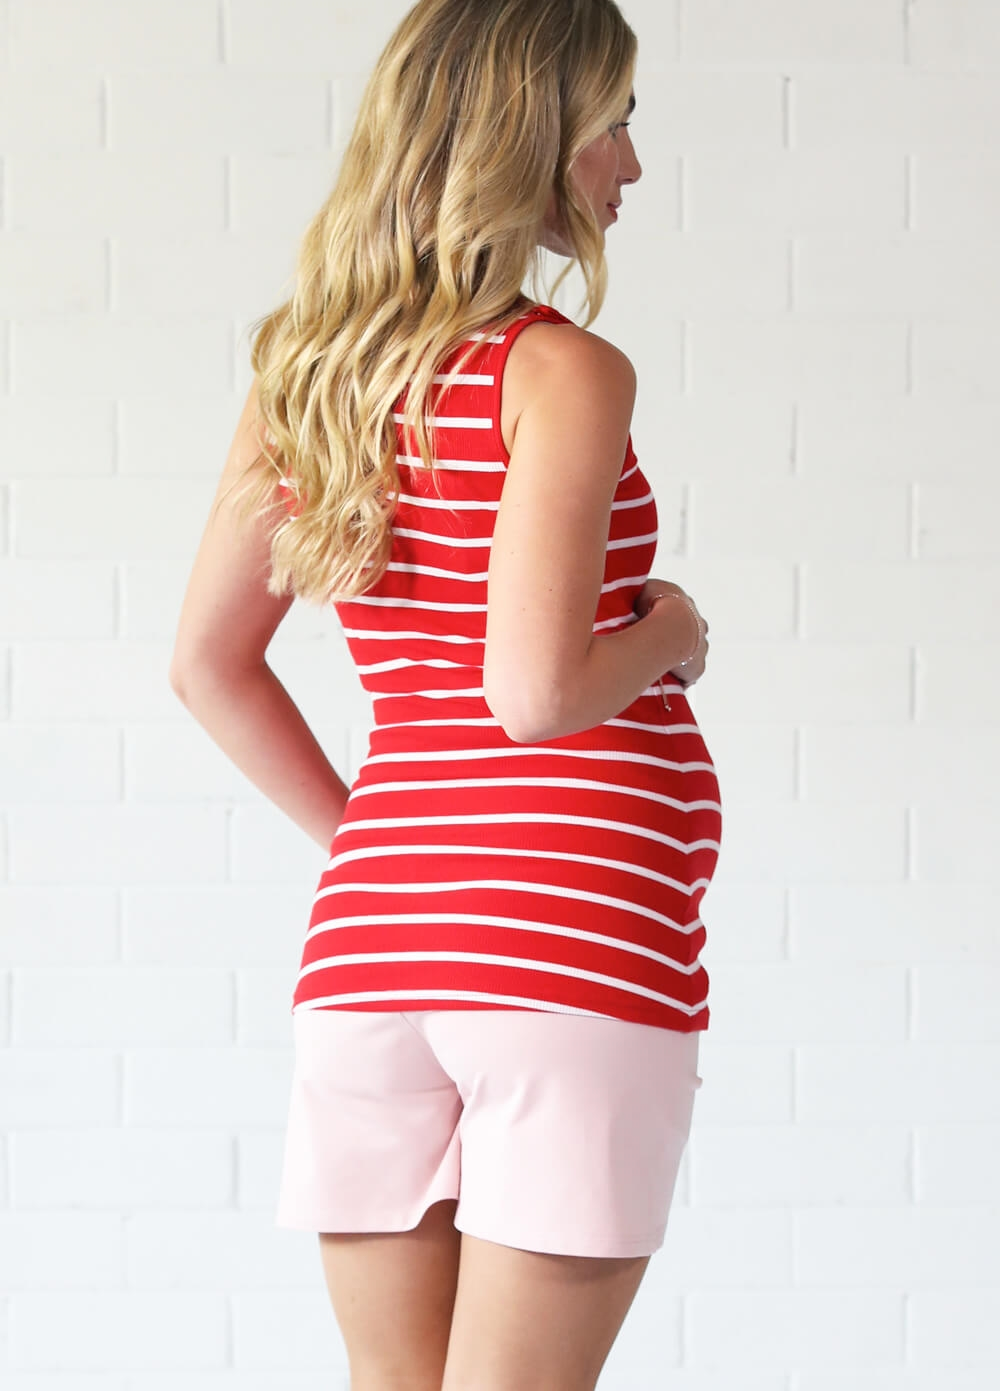 Laurina Red Striped Nursing Tank Top by Trimester Clothing